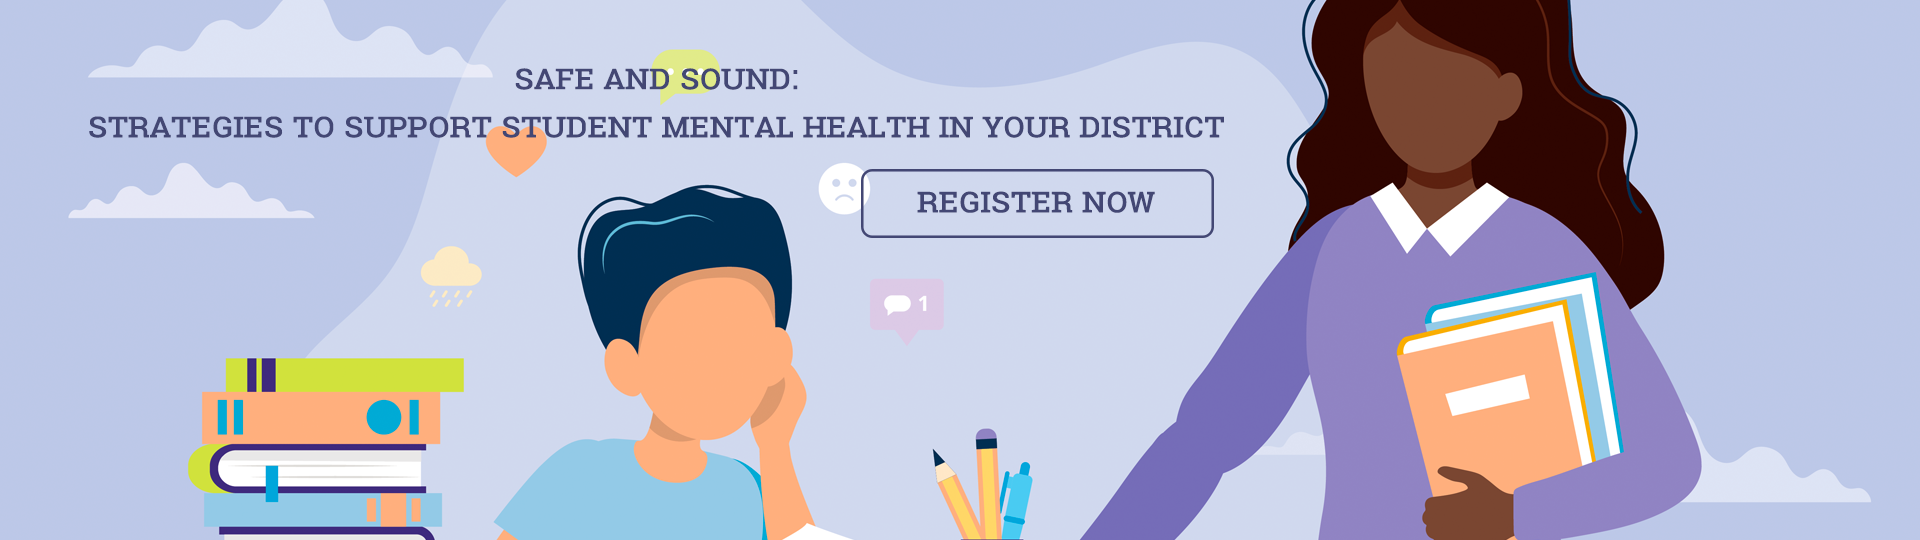 Safe and Sound: Strategies to Support Student Mental Health in Your District